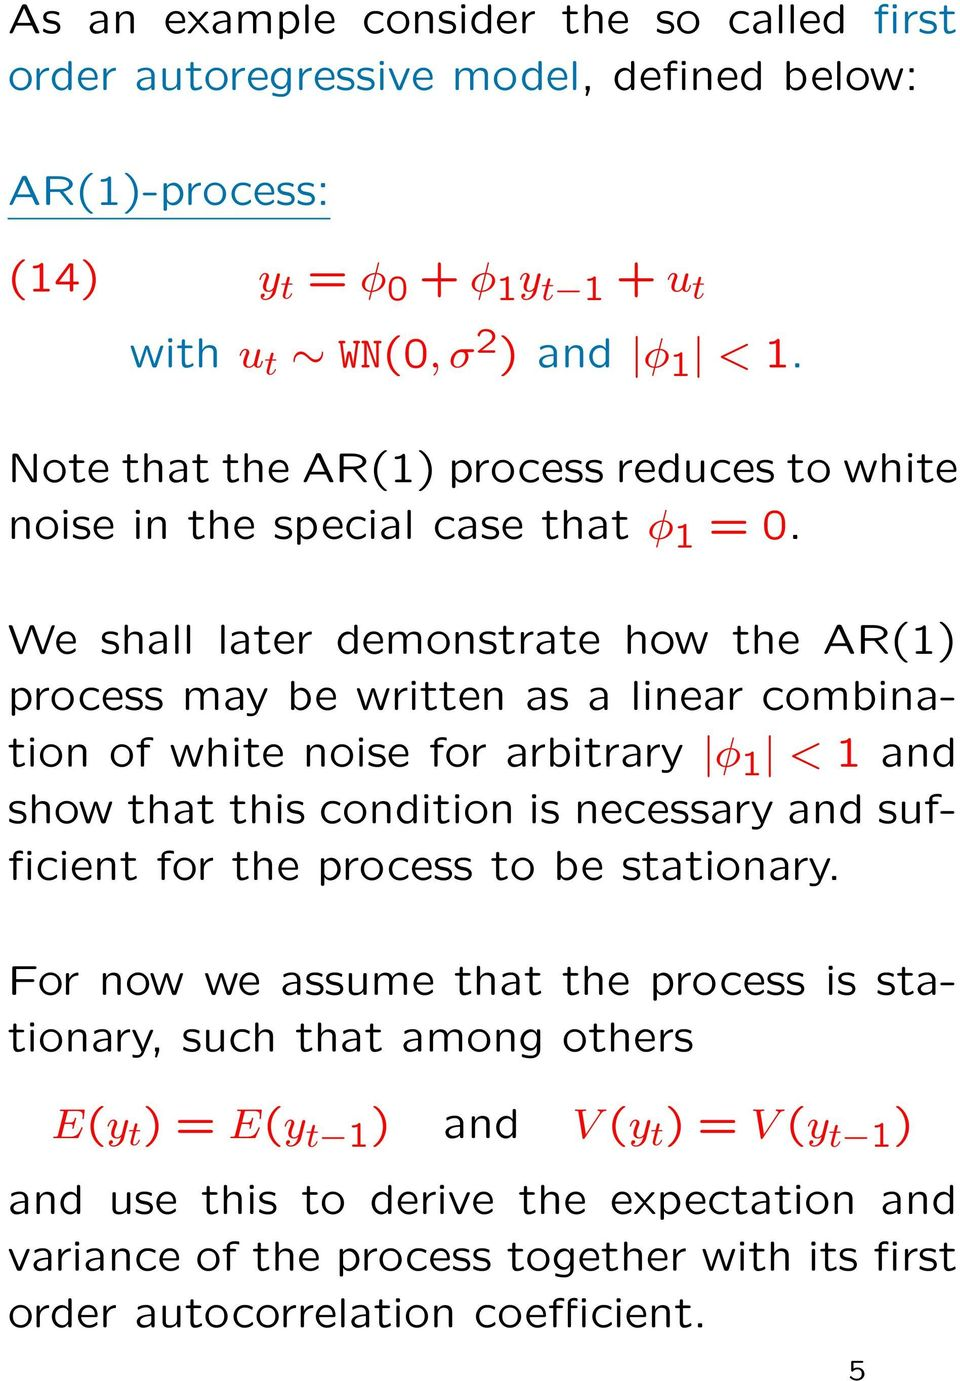 We shall later demonstrate how the AR(1) process may be written as a linear combination of white noise for arbitrary φ 1 < 1 and show that this condition is necessary and